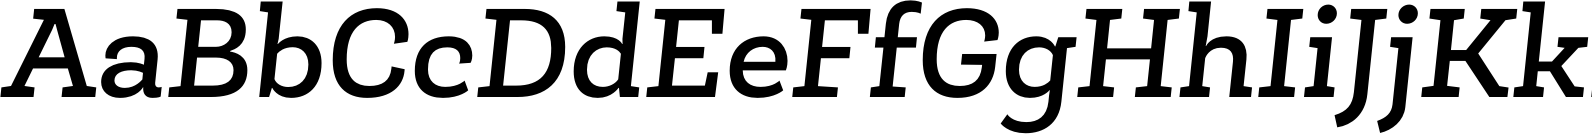 Roble Medium Italic